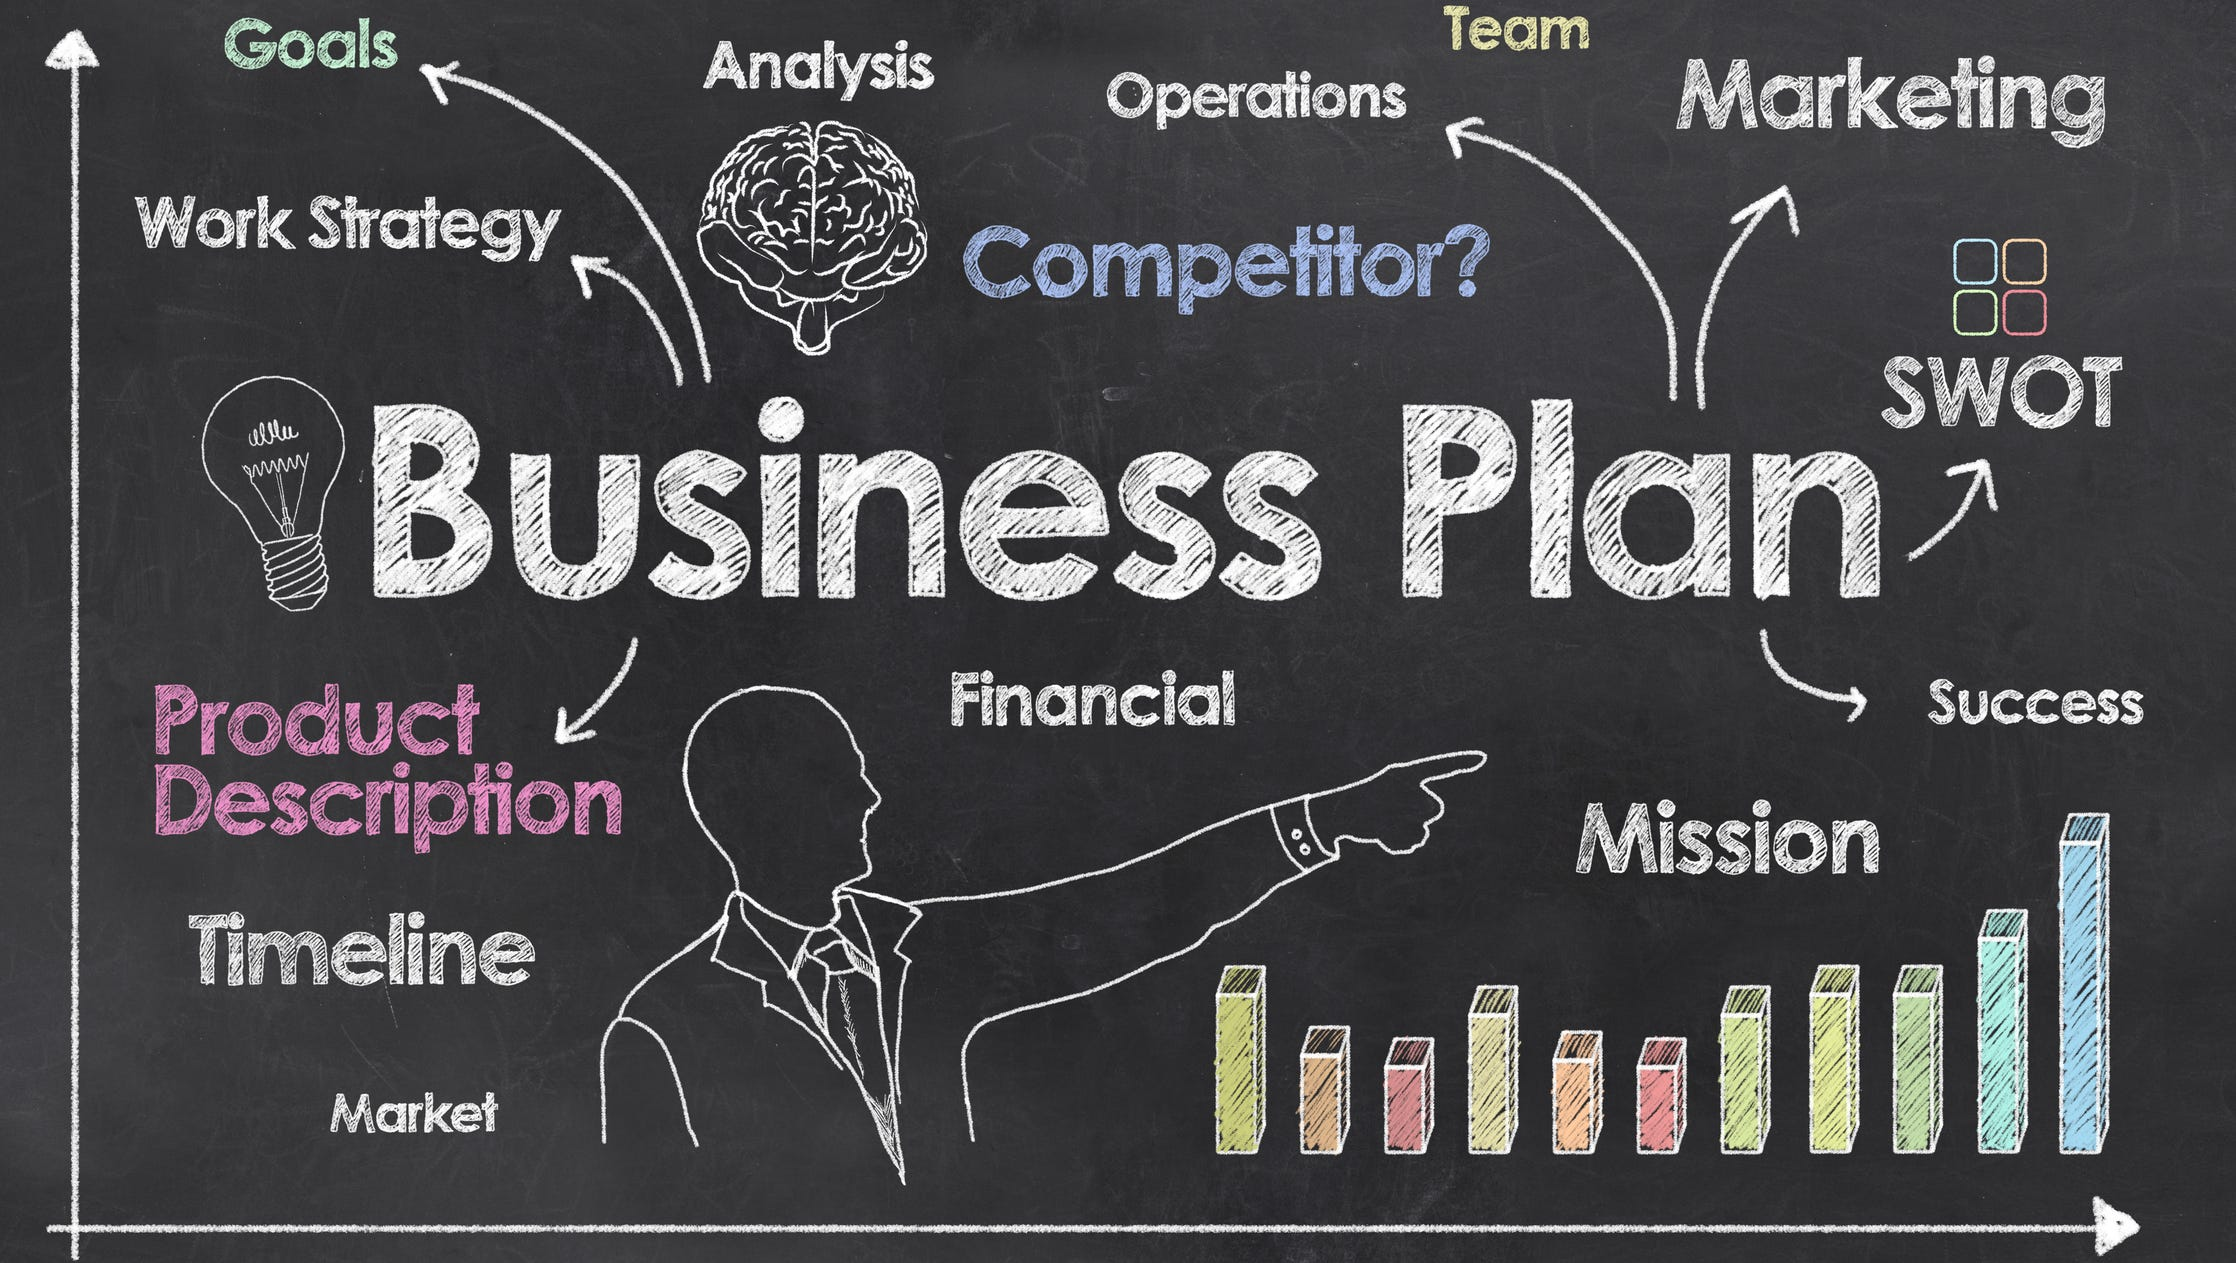 5 things that can make your business plan fail — and how to avoid them